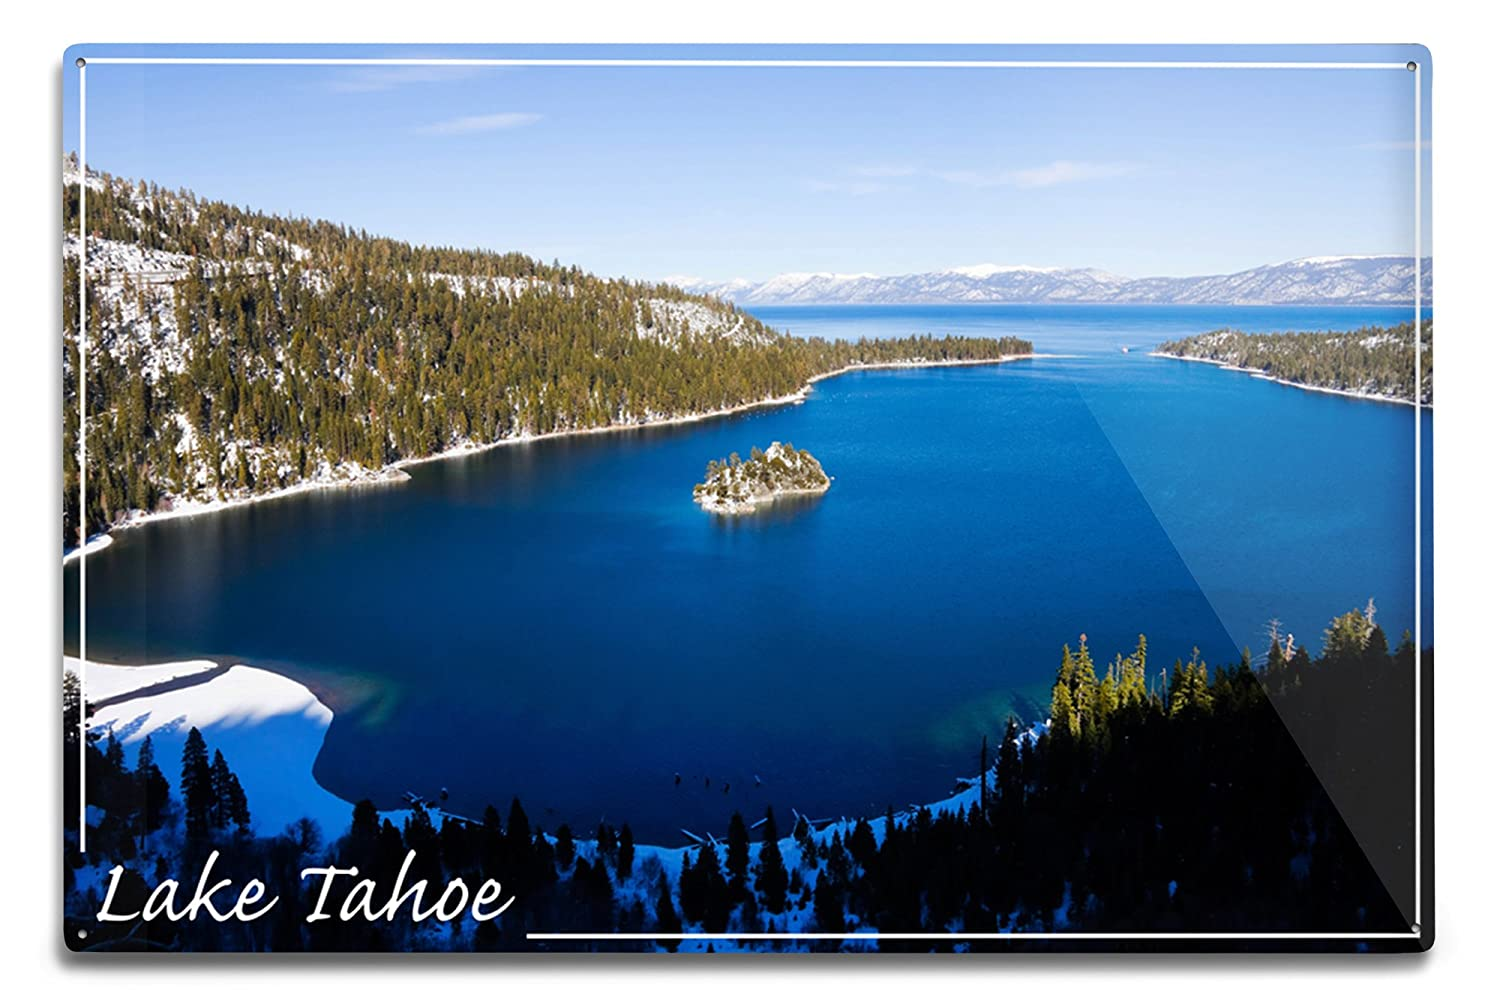 Lake Tahoe – エメラルドベイ冬の写真 12 x 18 Metal Sign LANT-46316-12x18M B06Y1FN6SY 12 x 18 Metal Sign12 x 18 Metal Sign